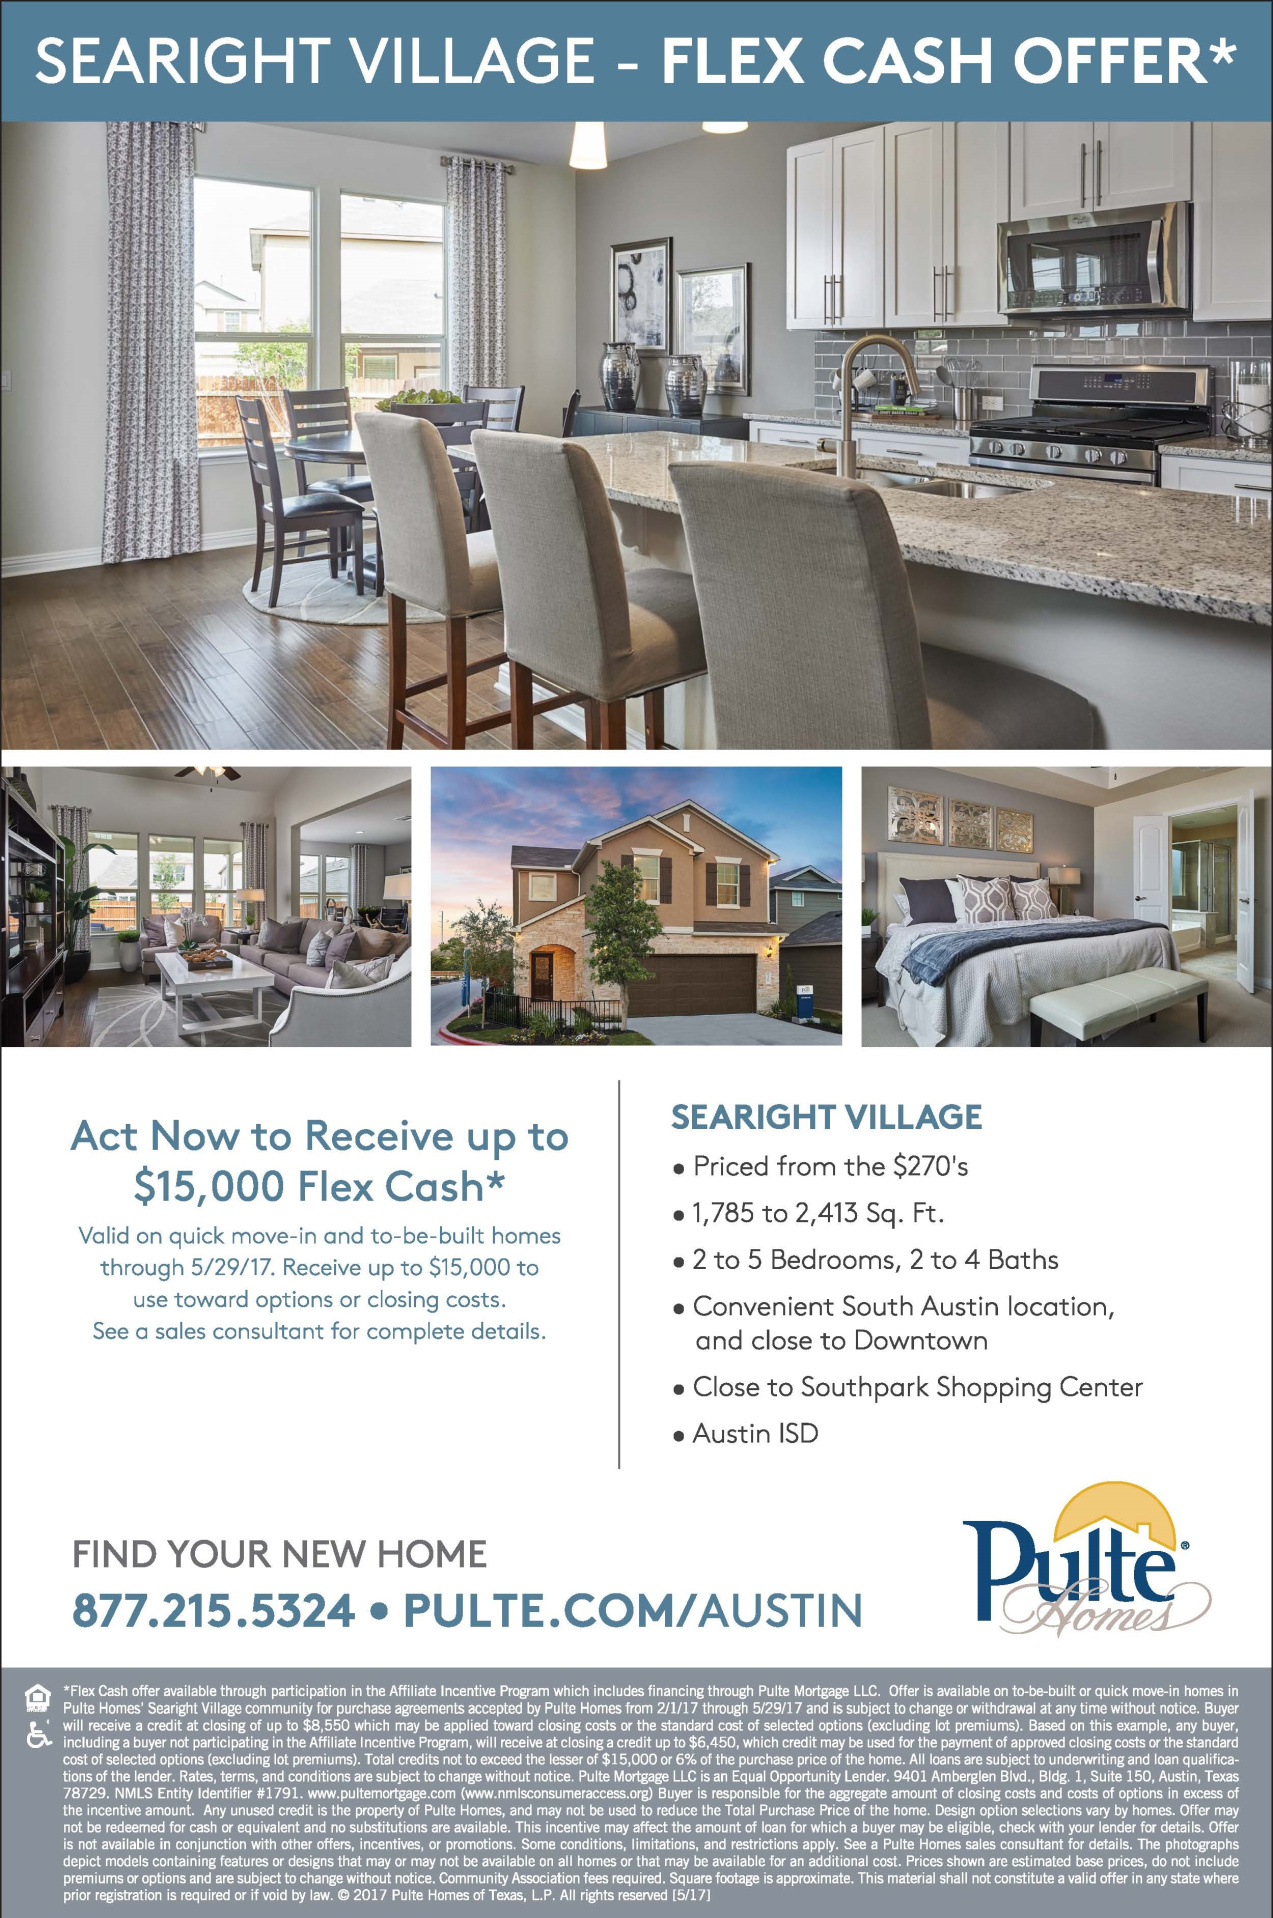 New Homes At Searight Village In Austin Texas Pulte - Pulte homes design center